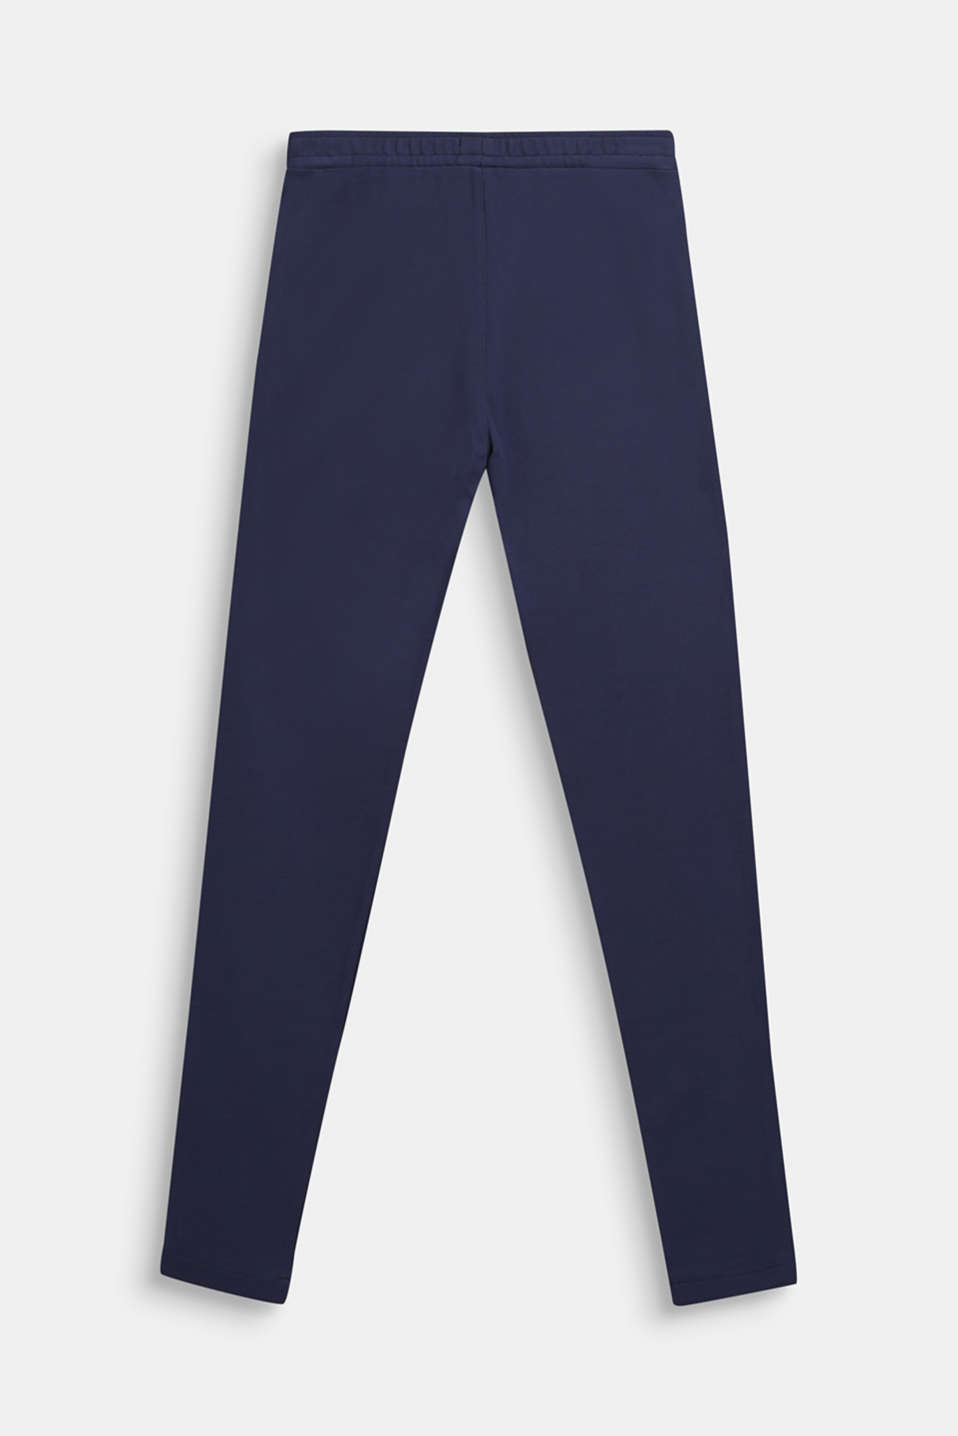 Pants knitted, LCNAVY BLUE, detail image number 1